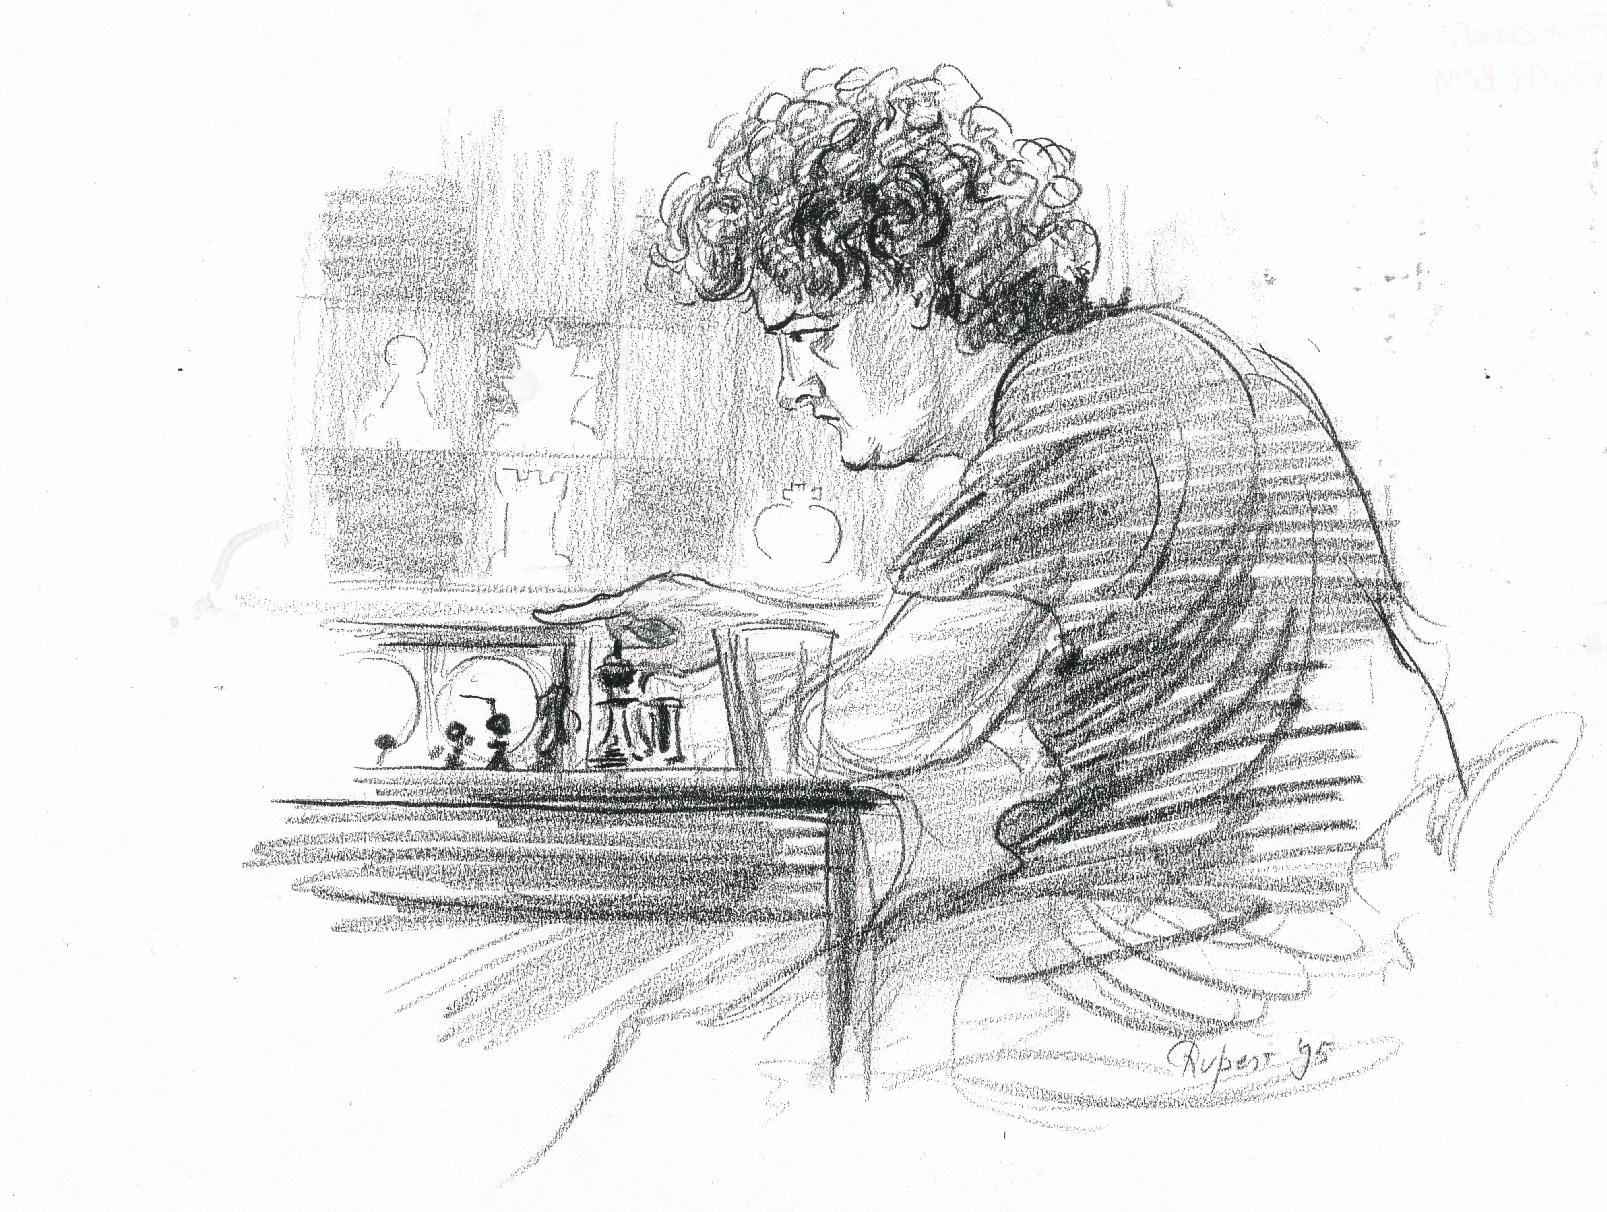 Julian Hodgson drawn by Rupert van der Linden